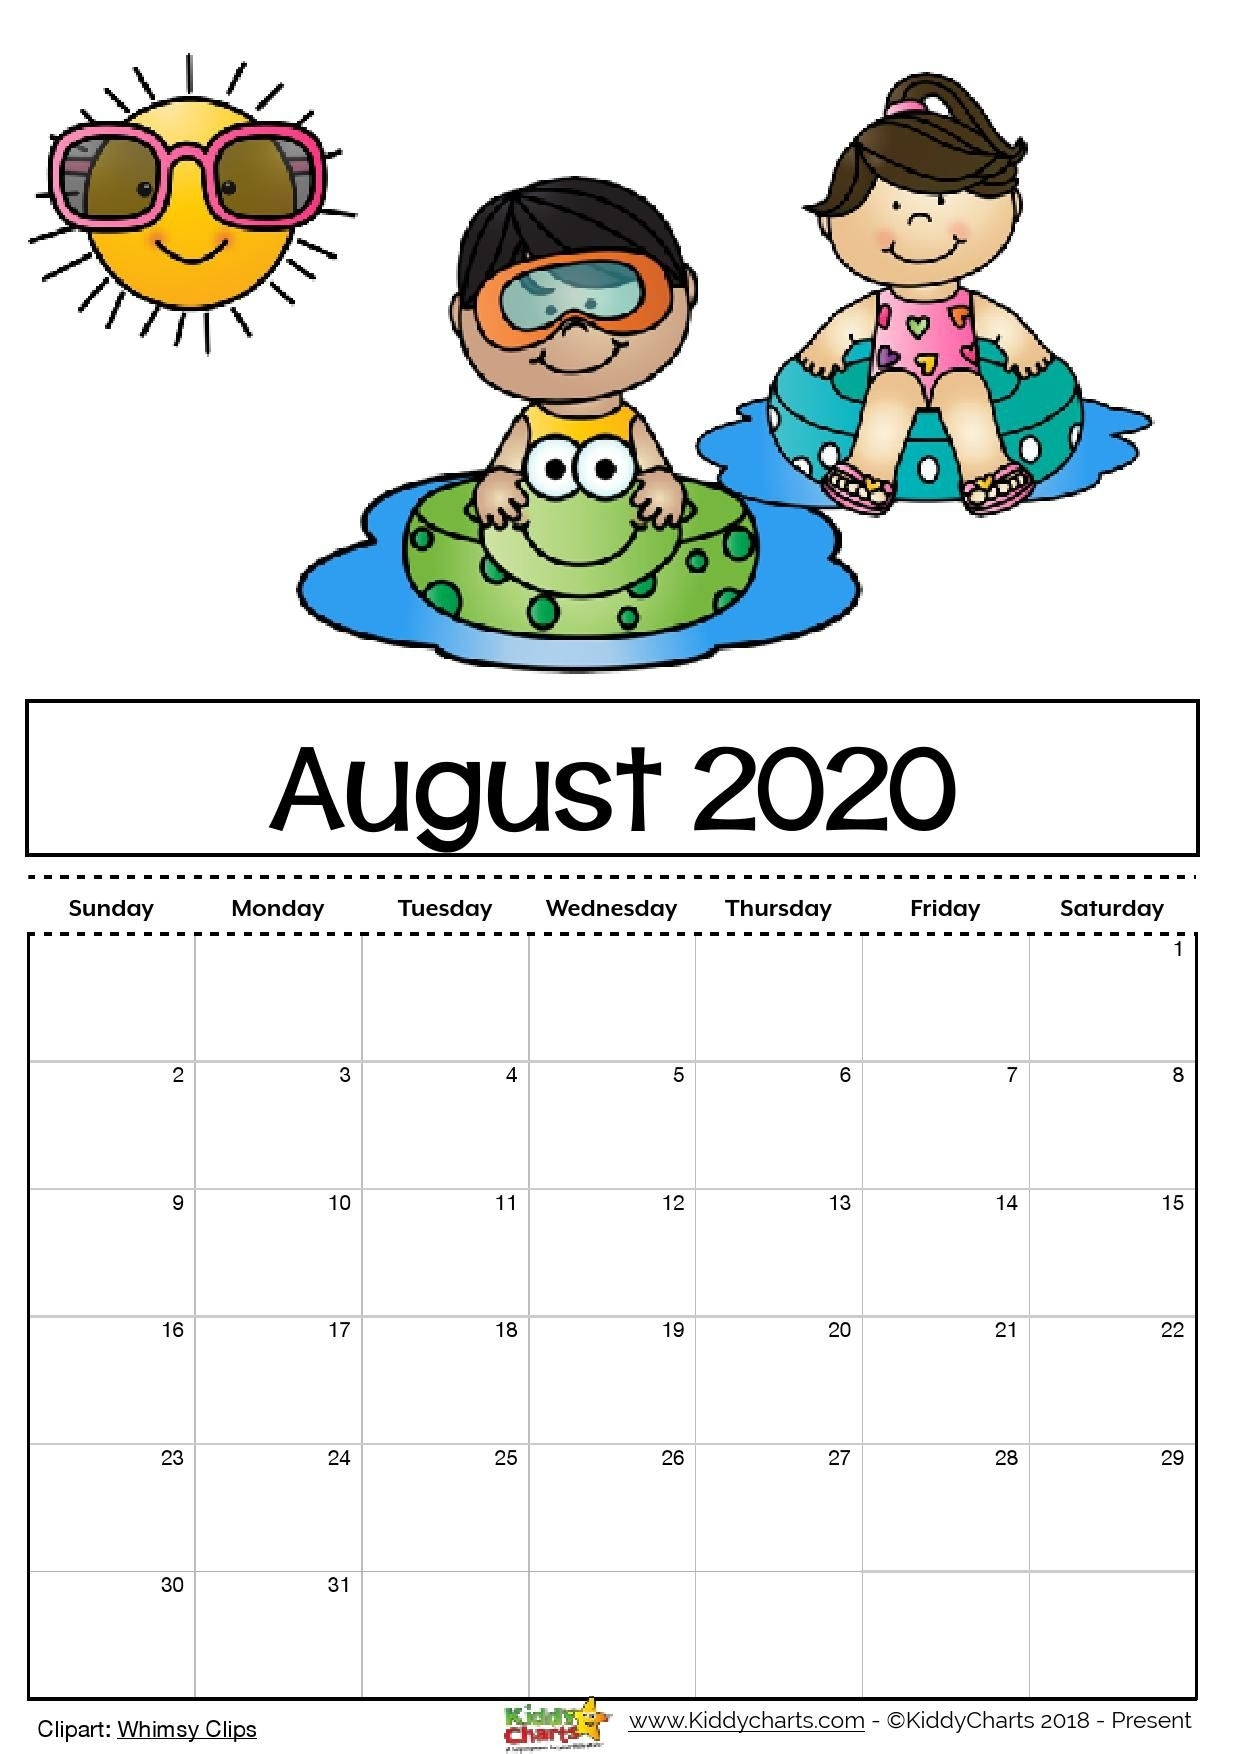 Check Out Our Free Editable 2020 Calendar Available For with Free Printable Children Calendars 2020 That Children Can Draw On